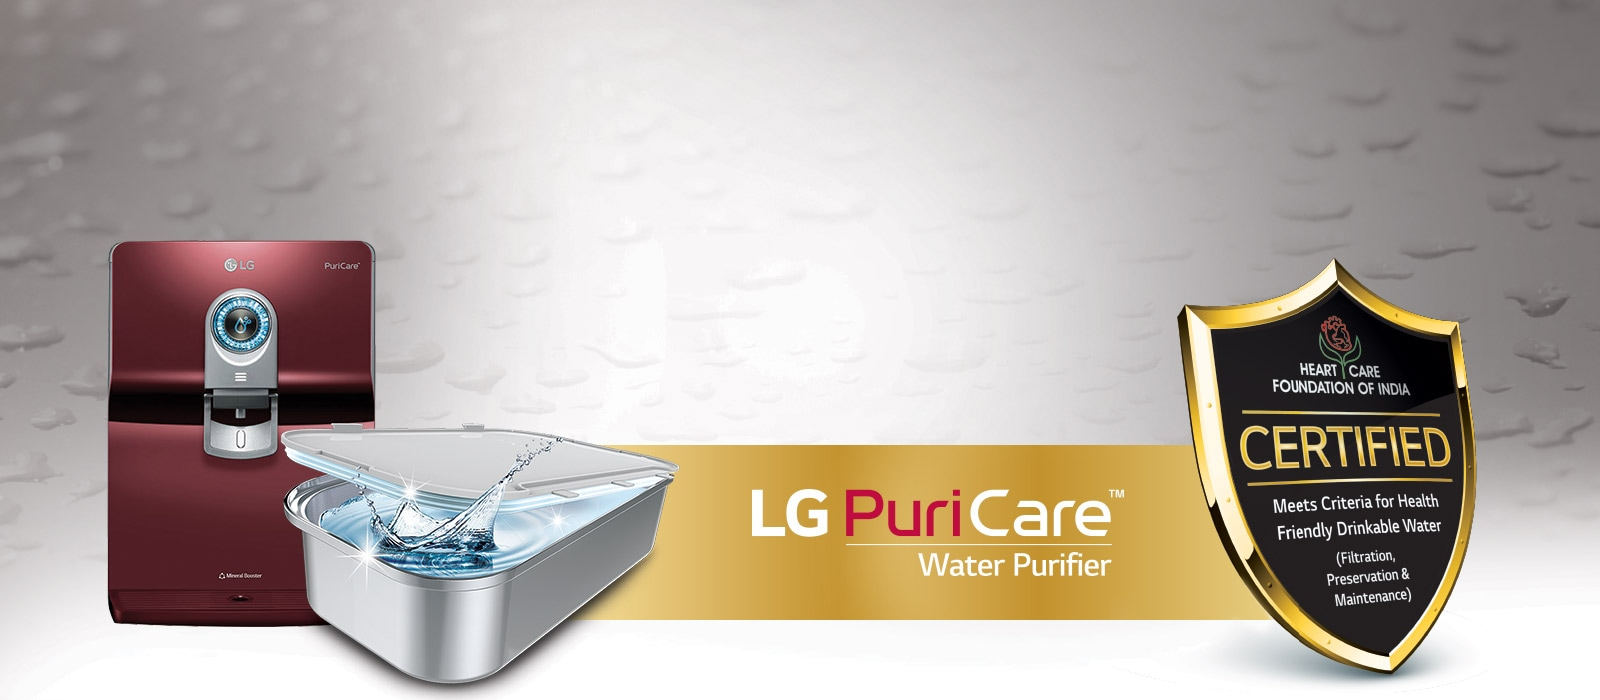 health care of India certification for LG water purifier